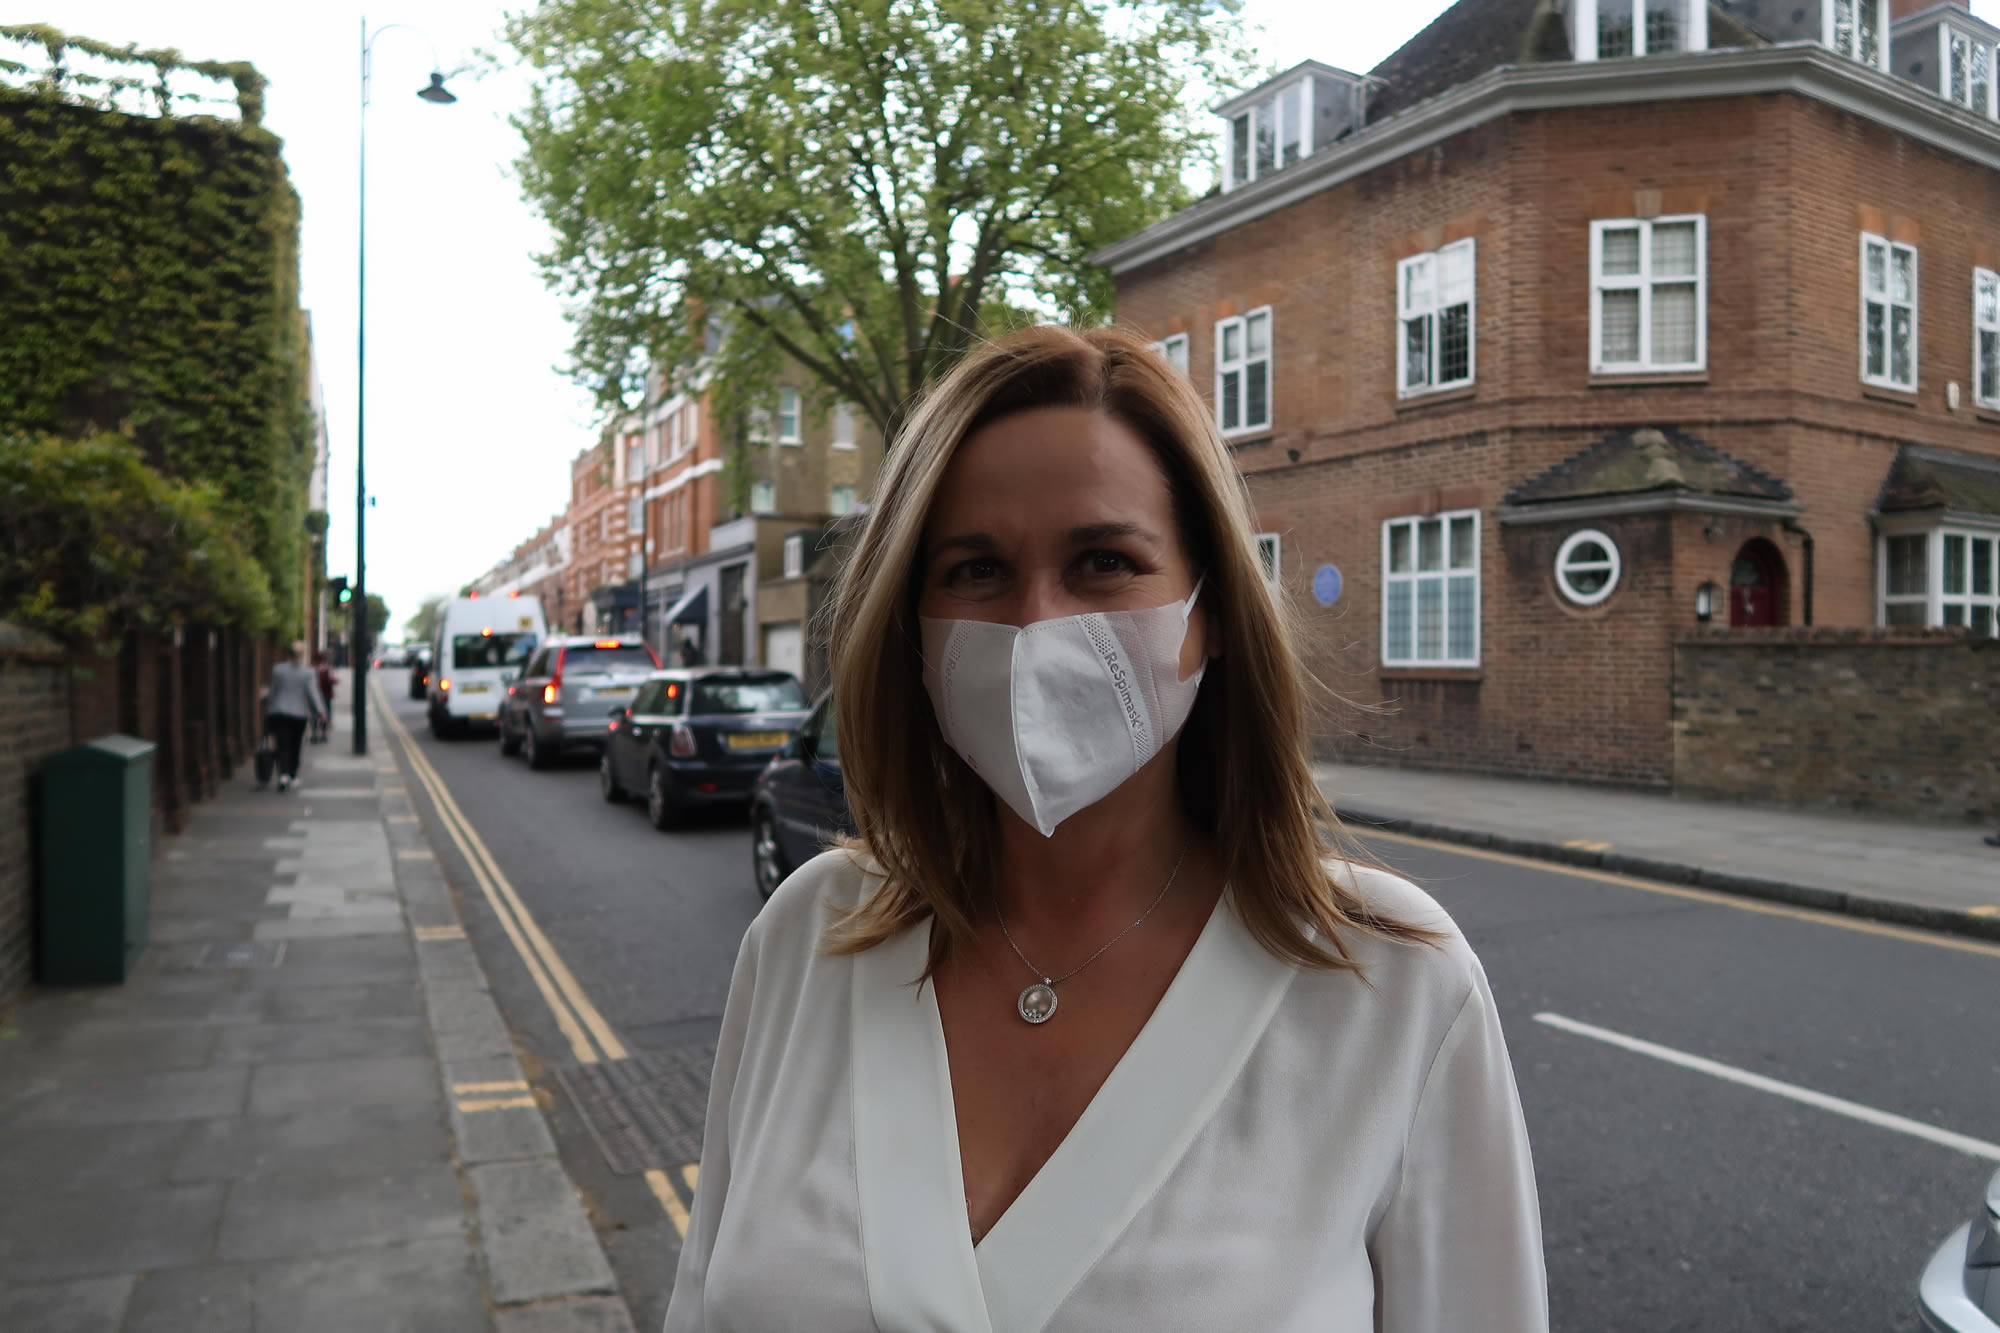 Face masks for air pollution - London's new must have